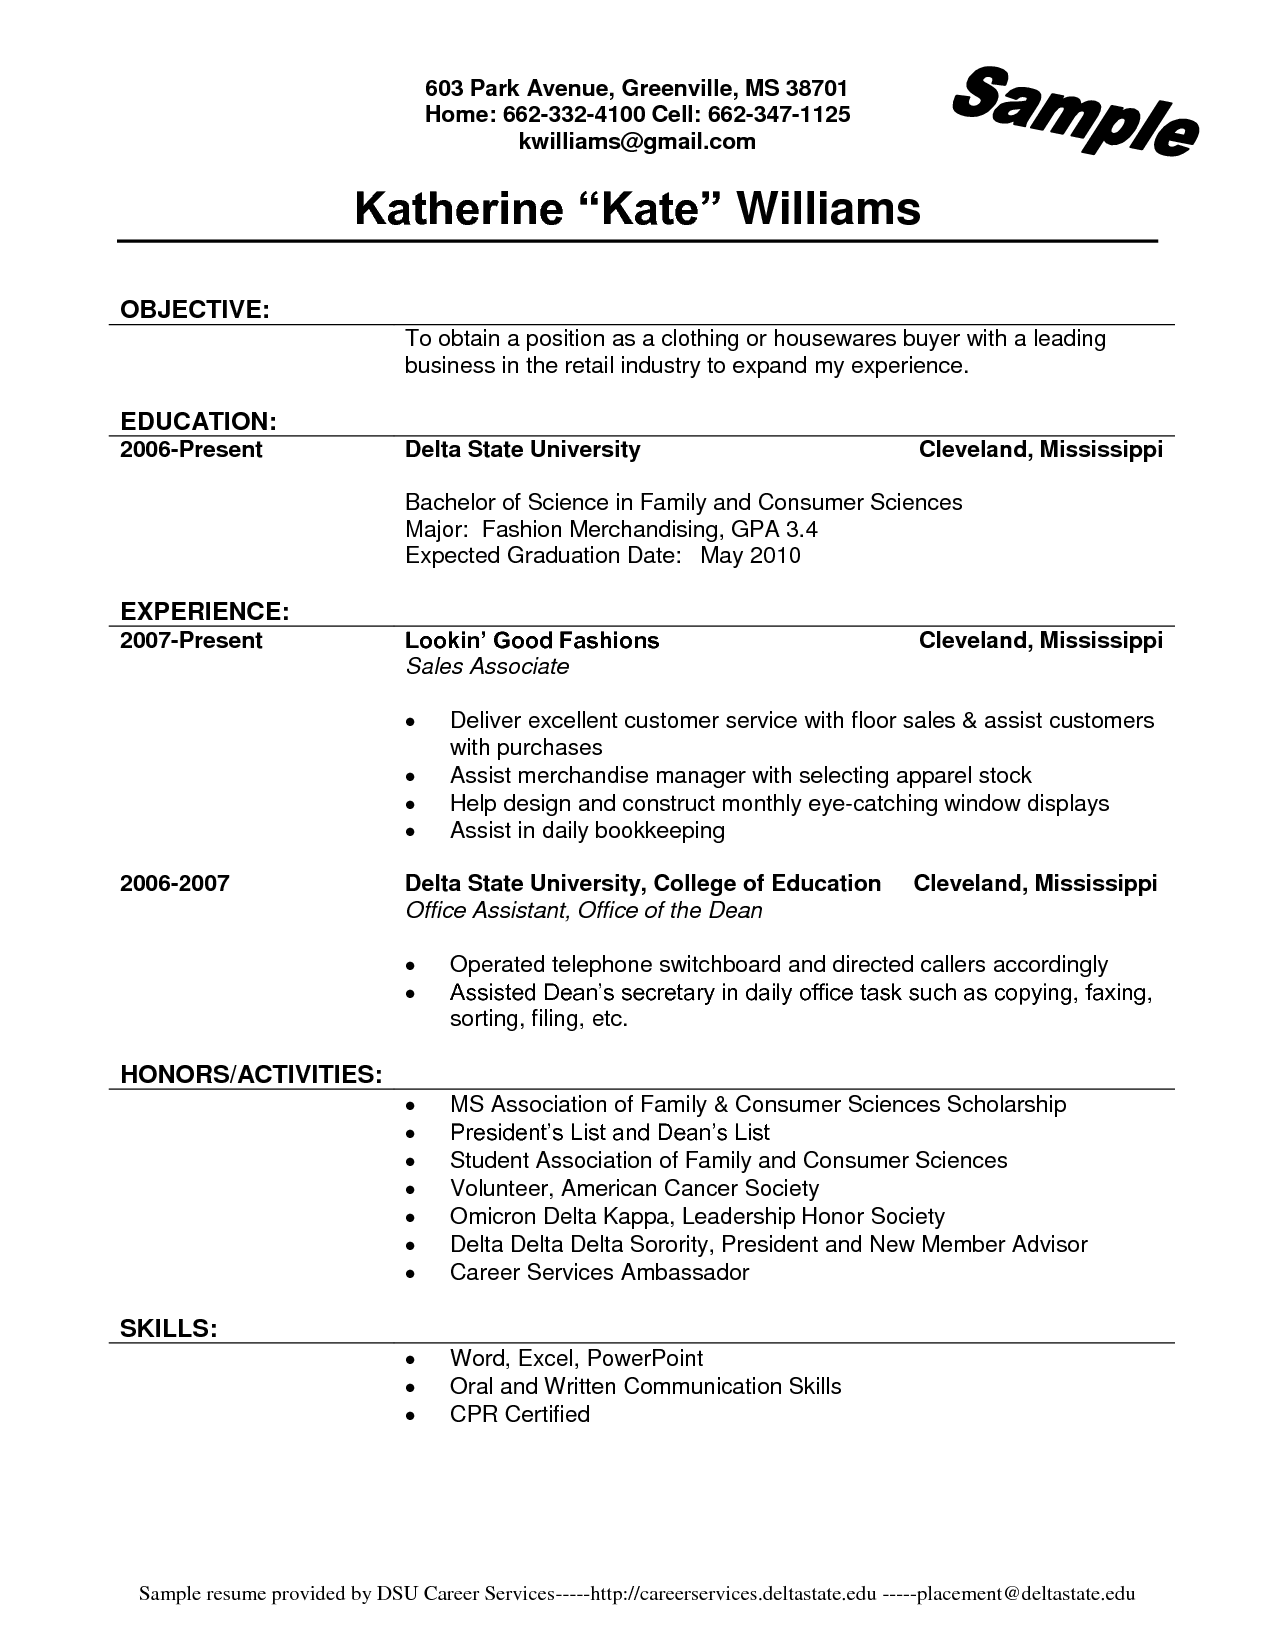 Food Service Worker Resume Pinresumeweb On Job Resume Format  Pinterest  Job Resume